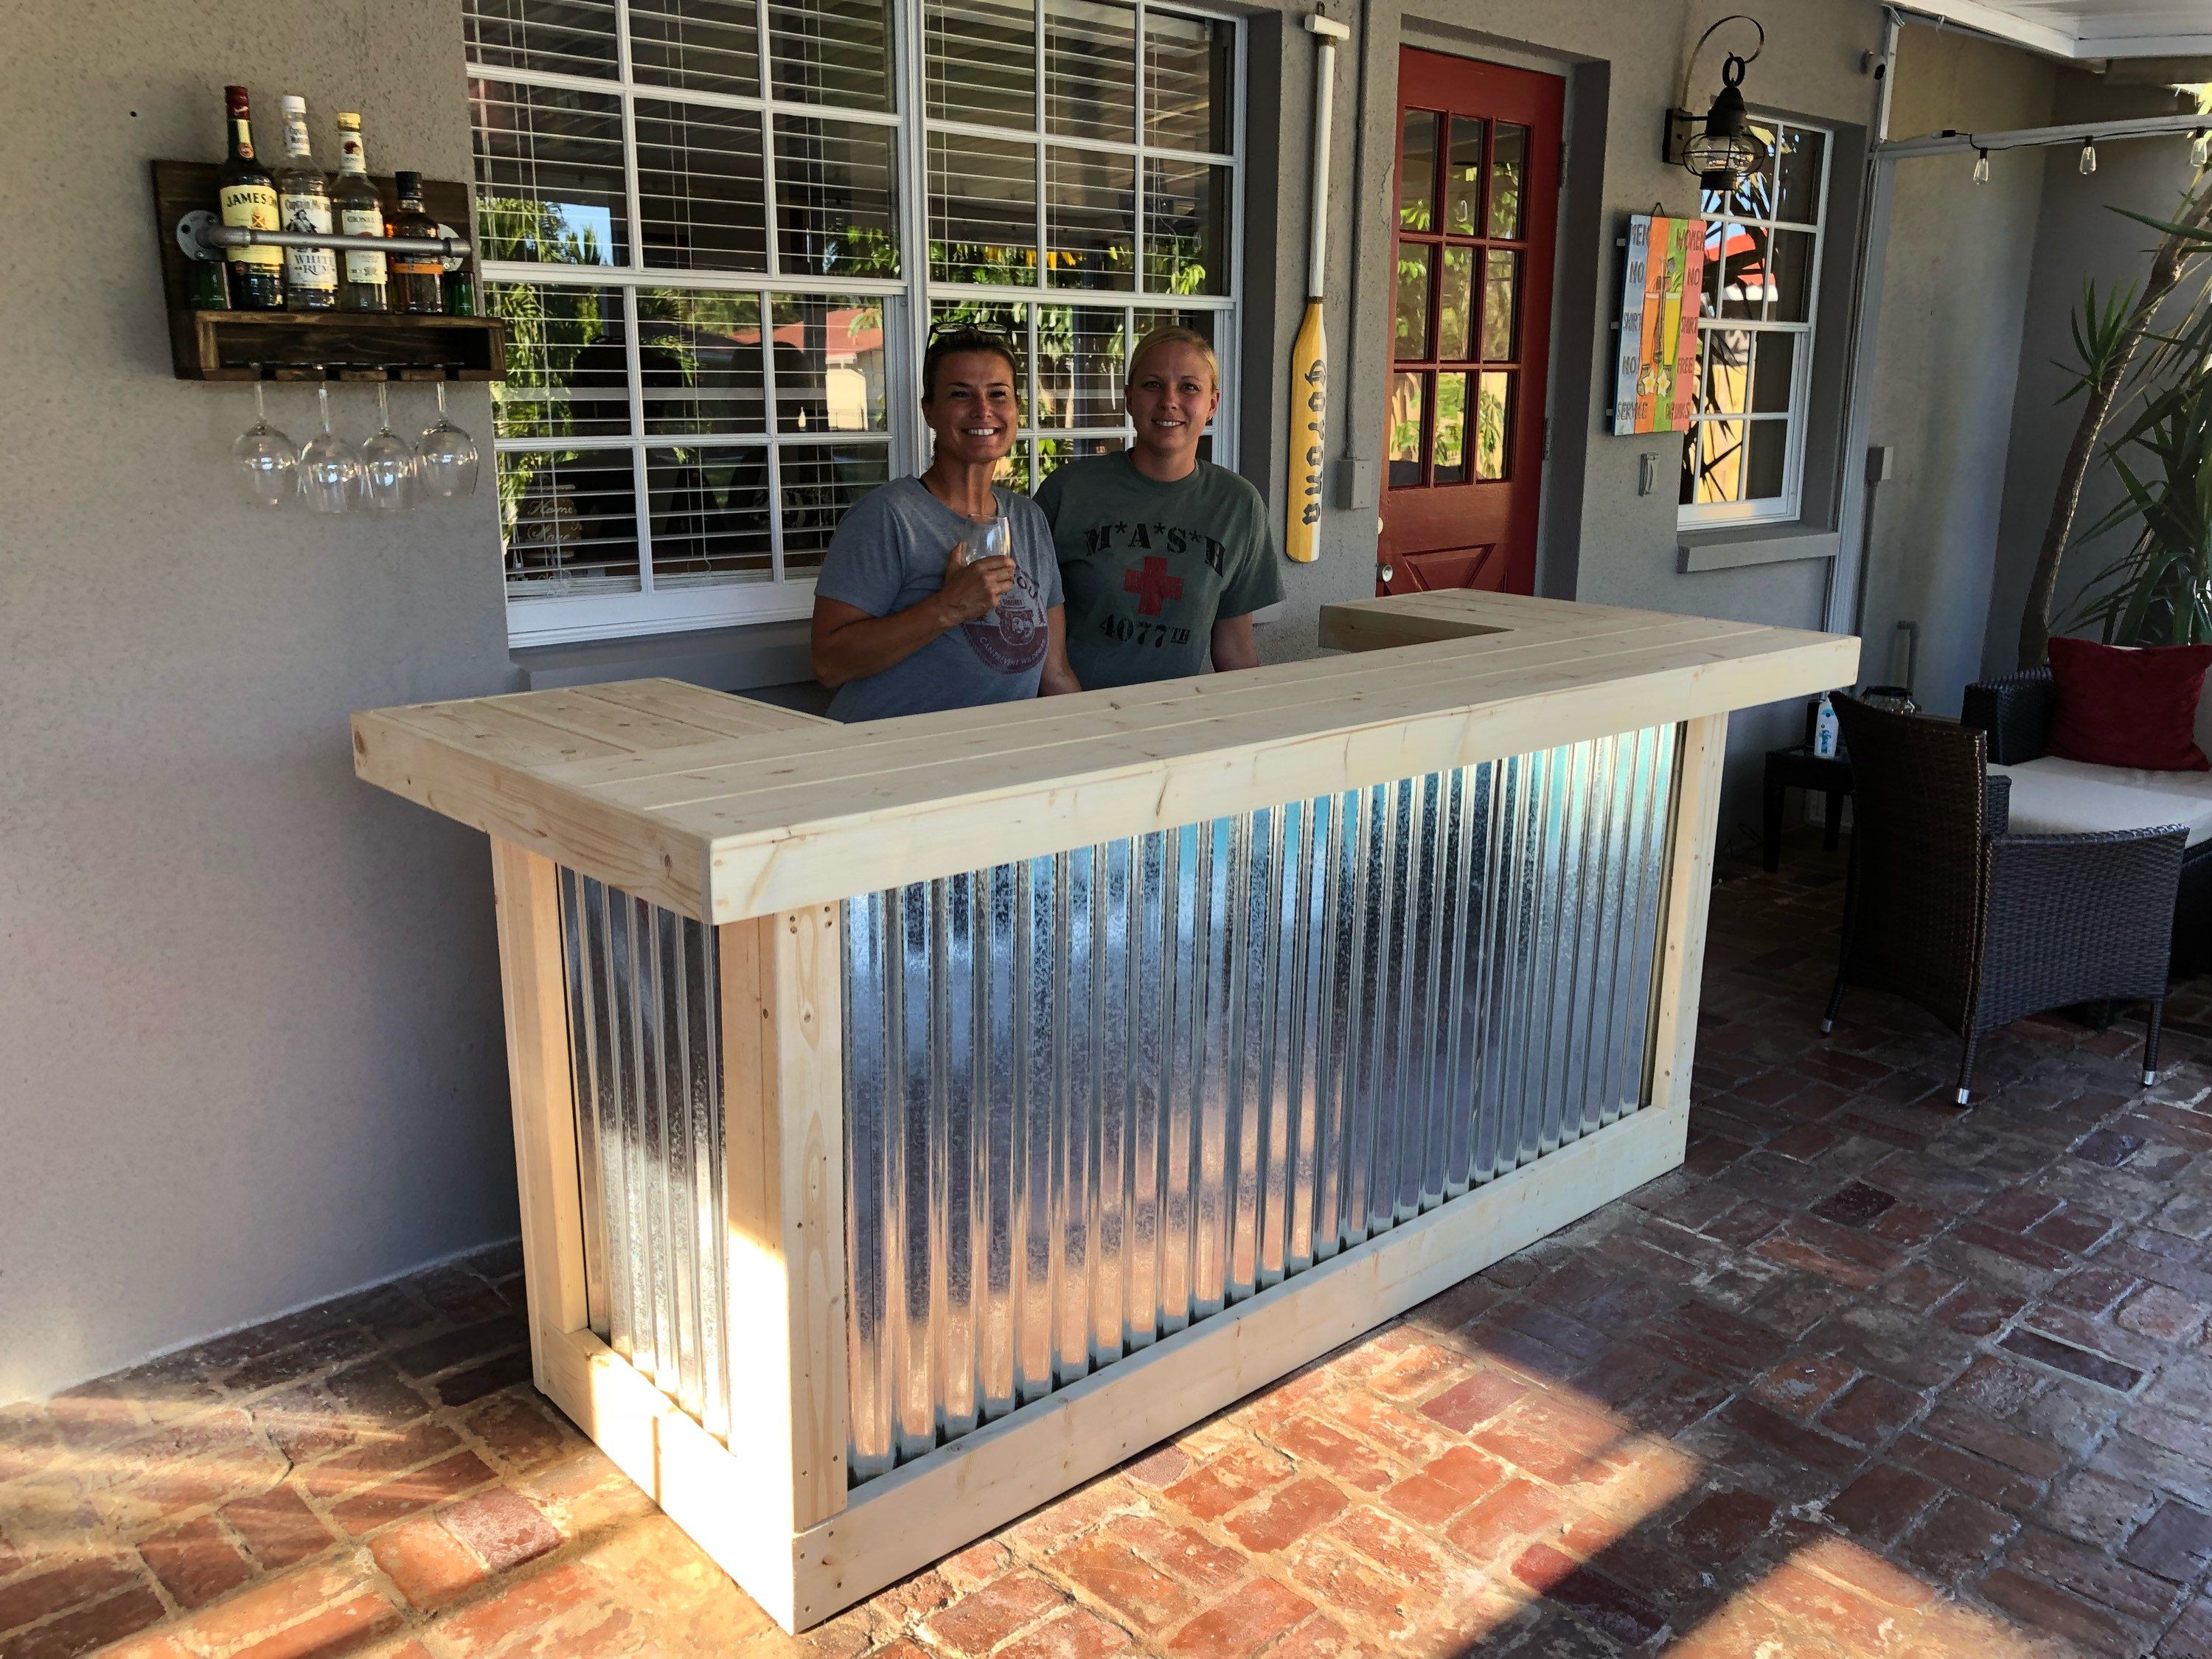 The Indoor Thomas – 3 x 8 X 3 2 level corrugated metal and wood unfinished bar